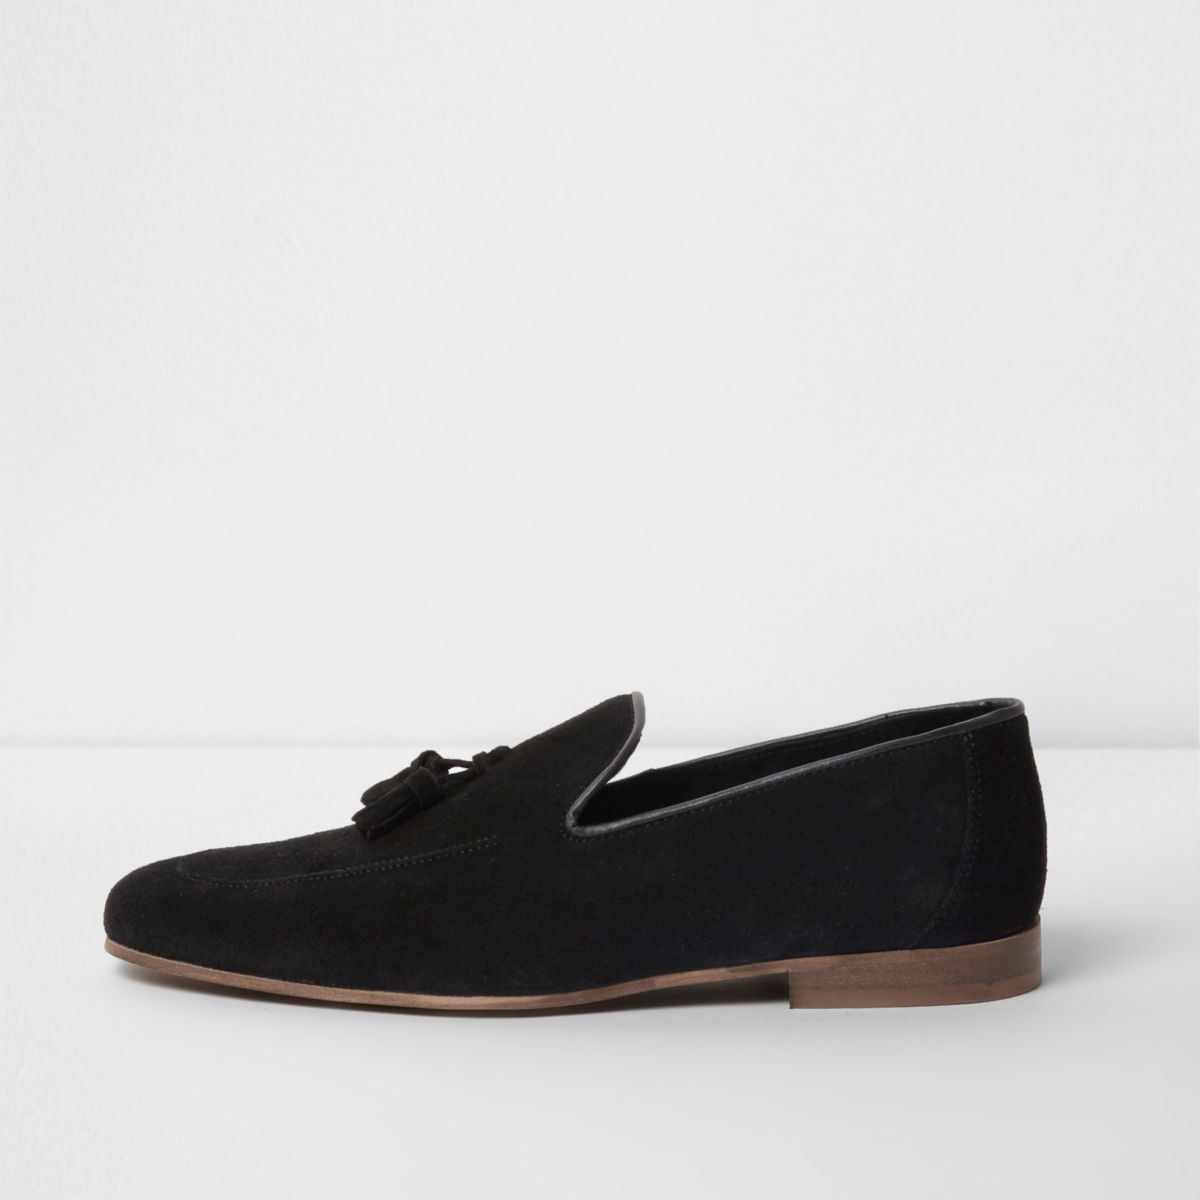 Black suede tassel loafers - Shoes - Shoes & Boots